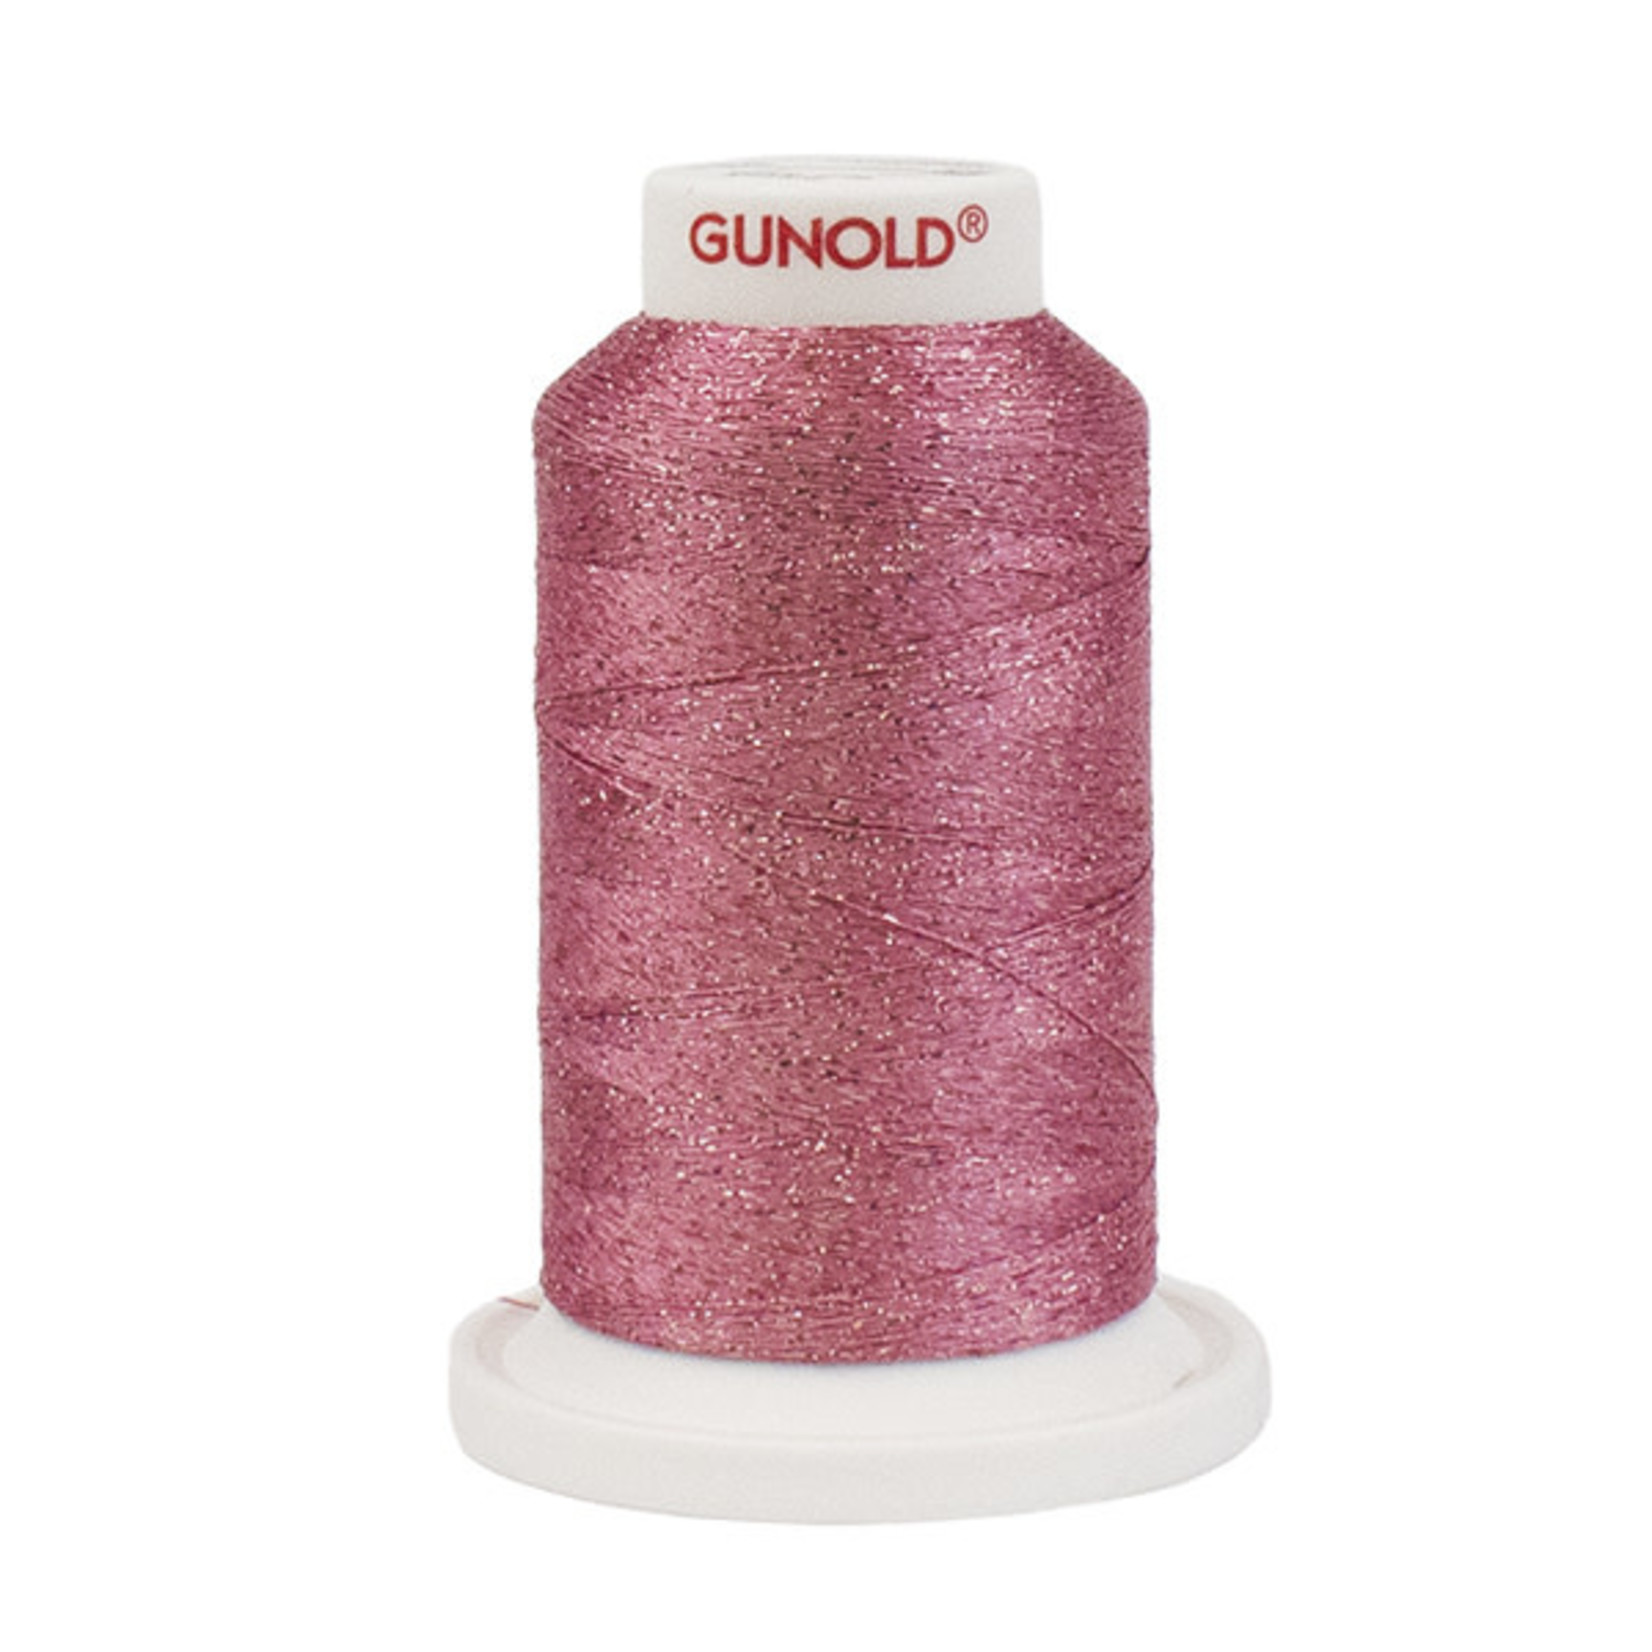 Gunold Poly Sparkle™ (Star™) Mini-King Cone 1,100 YD, 30 Wt, Lt Burgundy with Tone On Tone Sparkle 50554